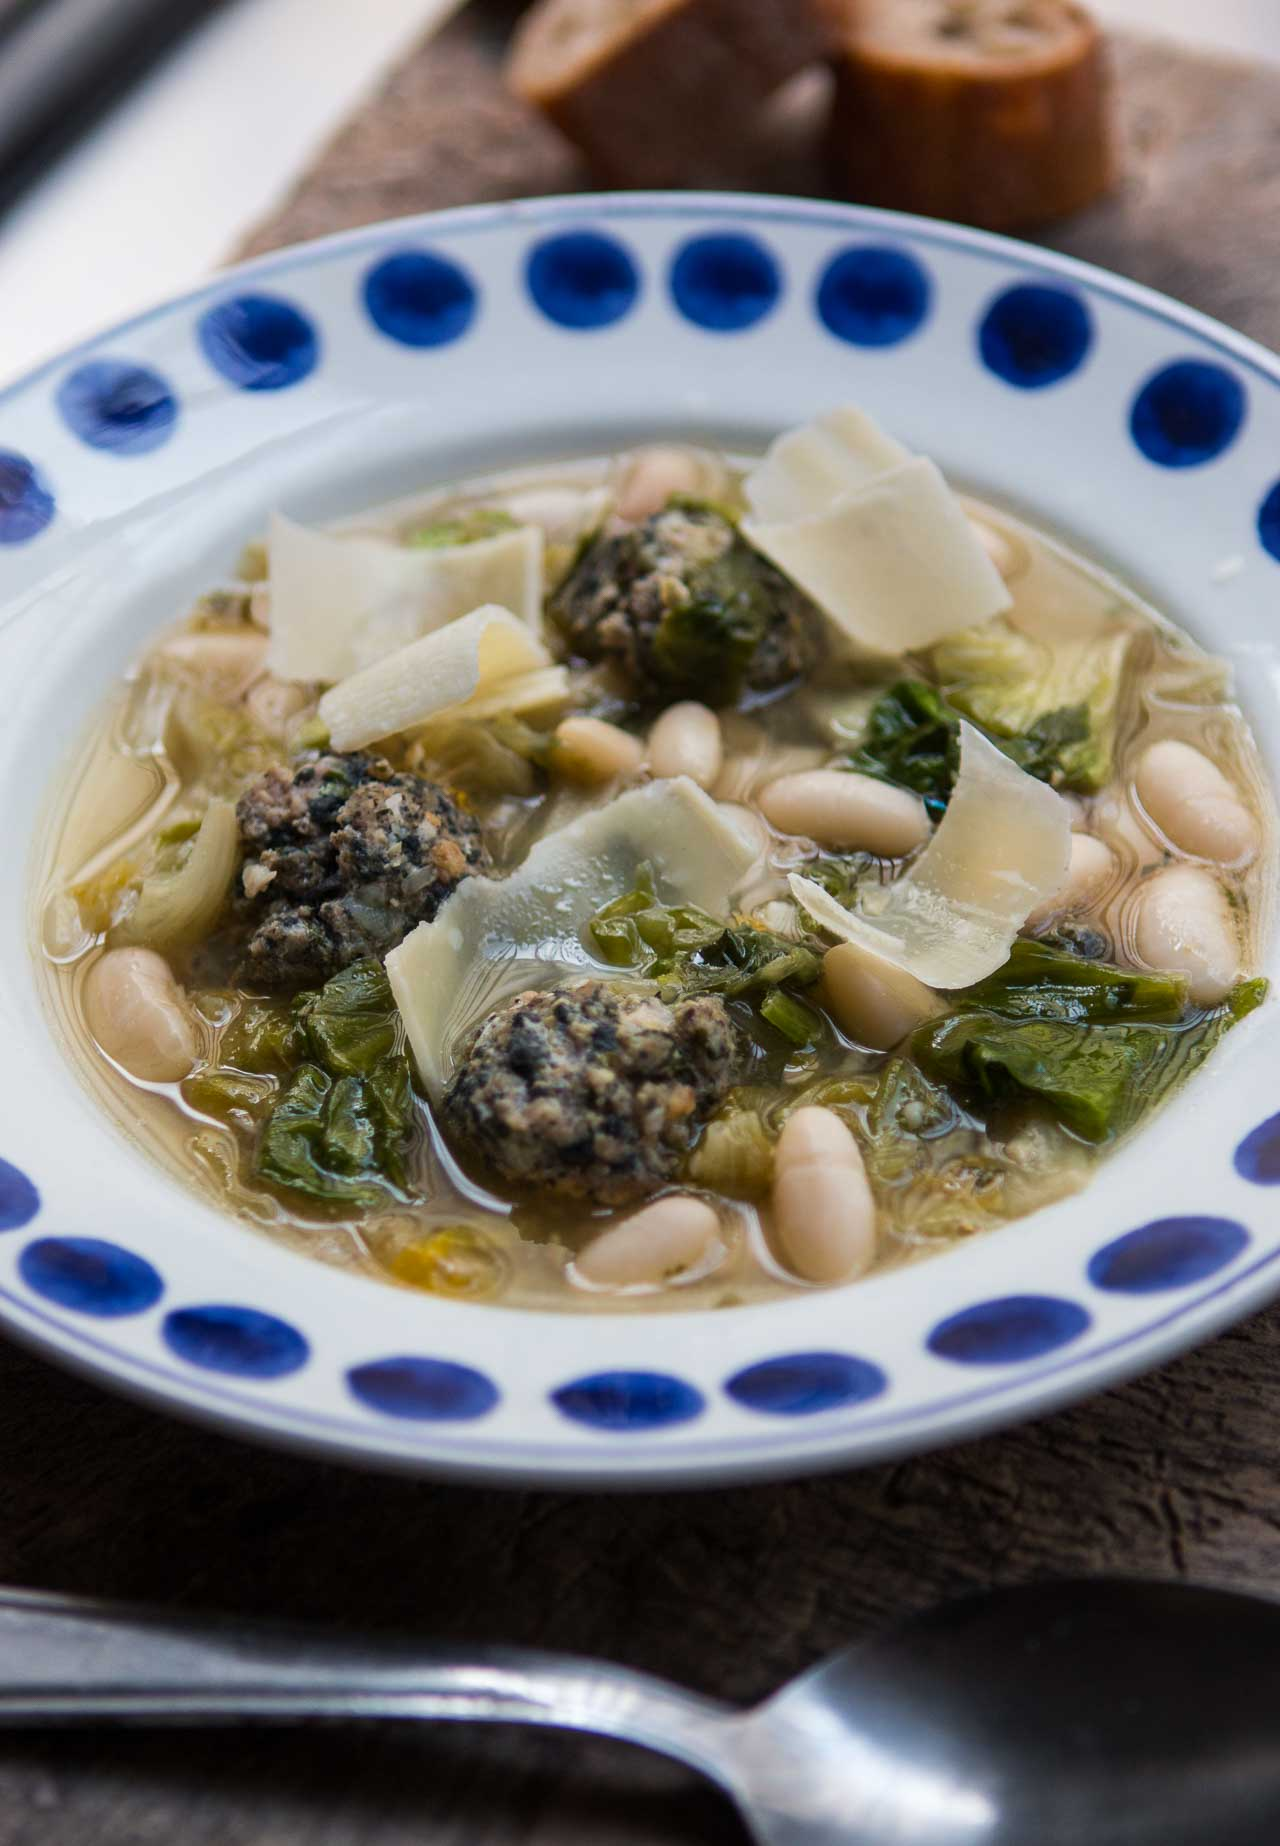 A hearty winter soup with greens, meatballs, and beans.